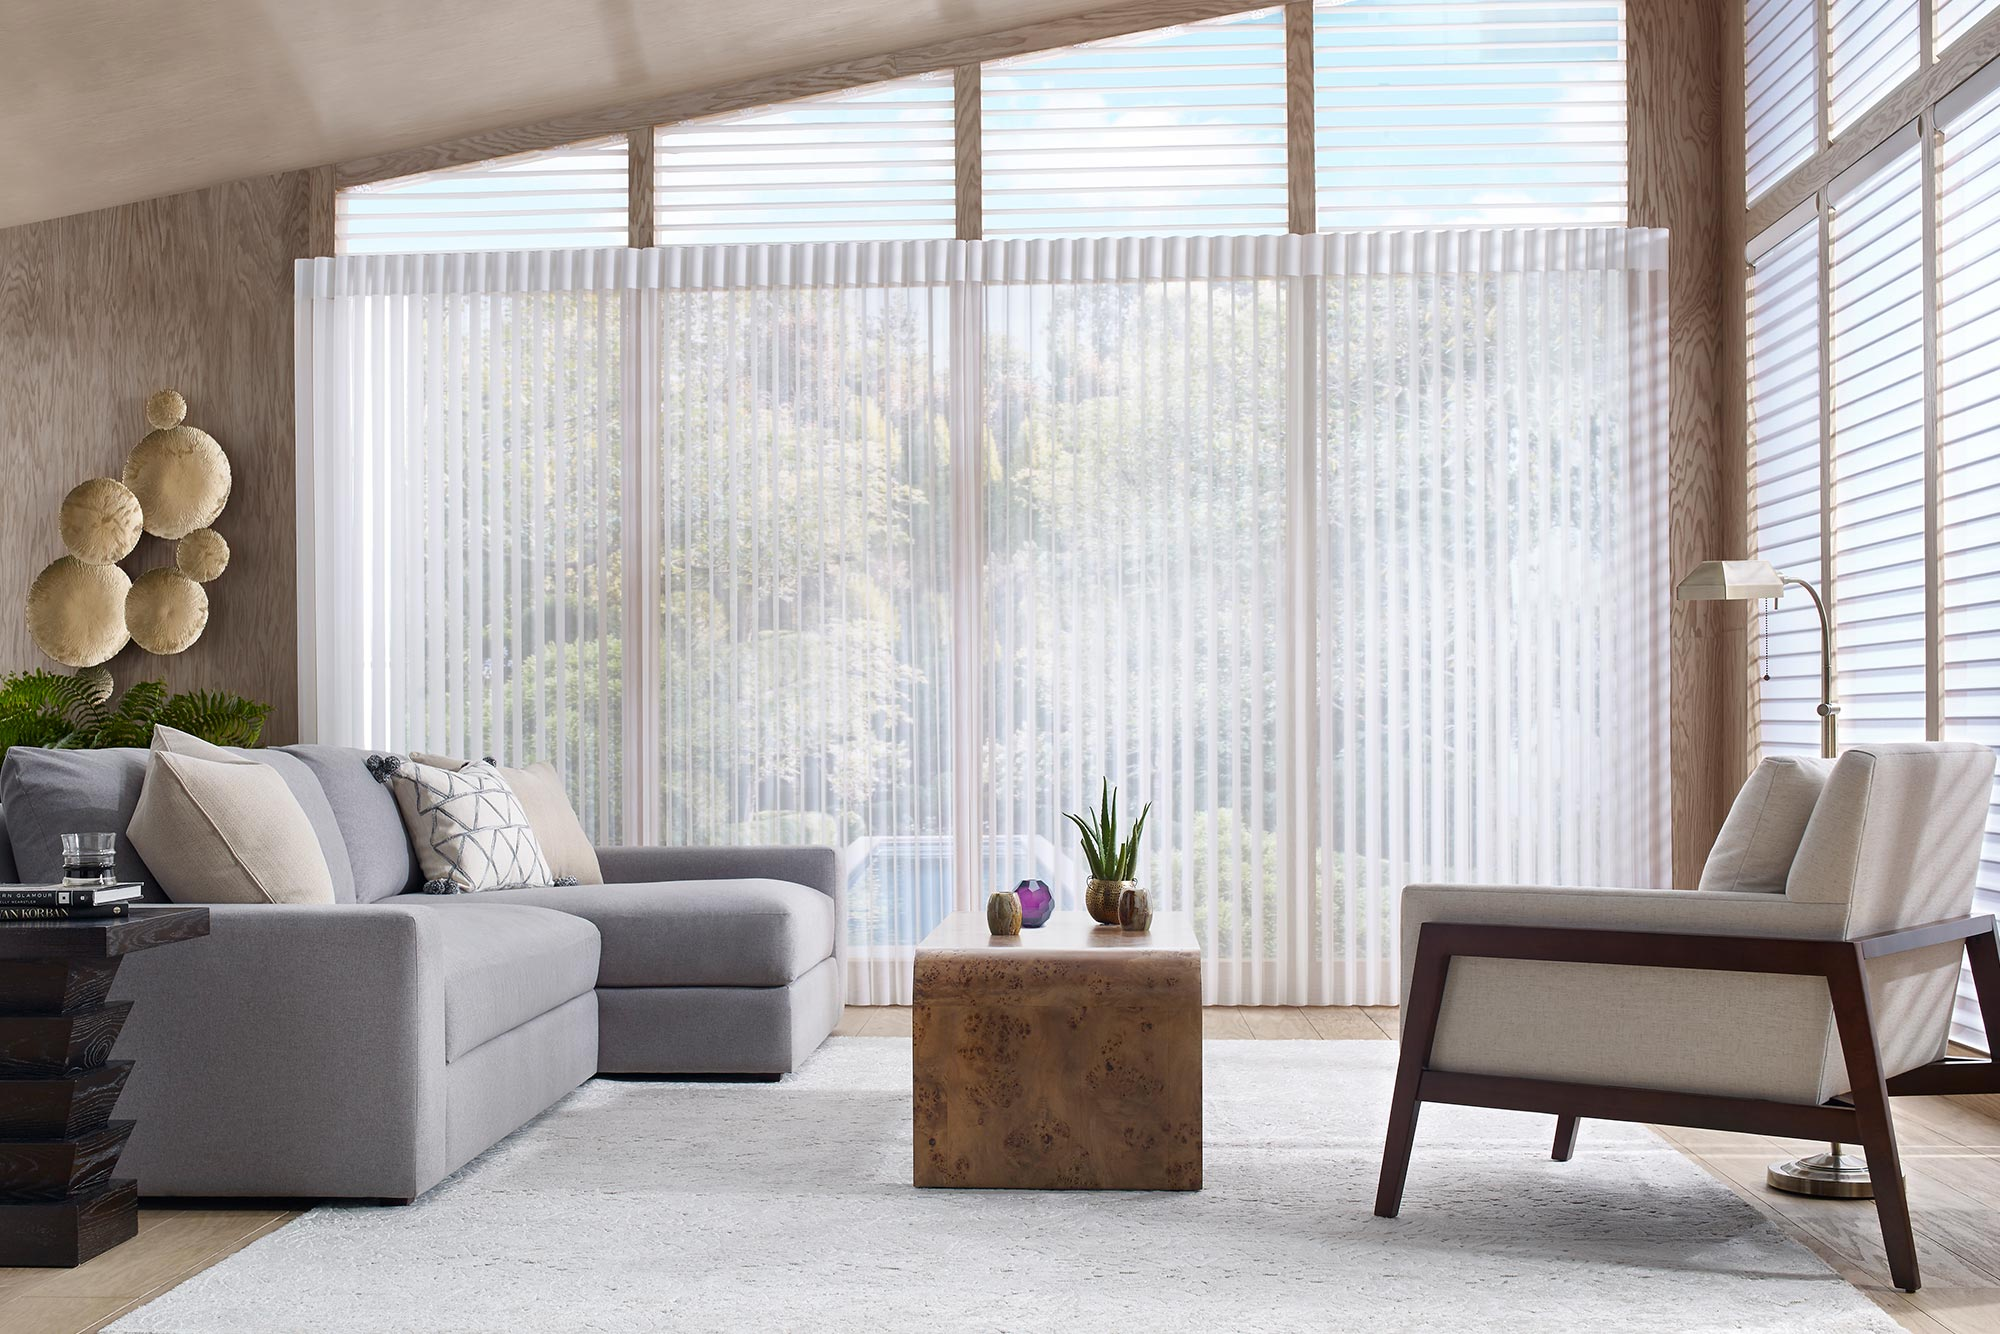 Room scene showing sofa and chairs in front of a window with luxurious blinds